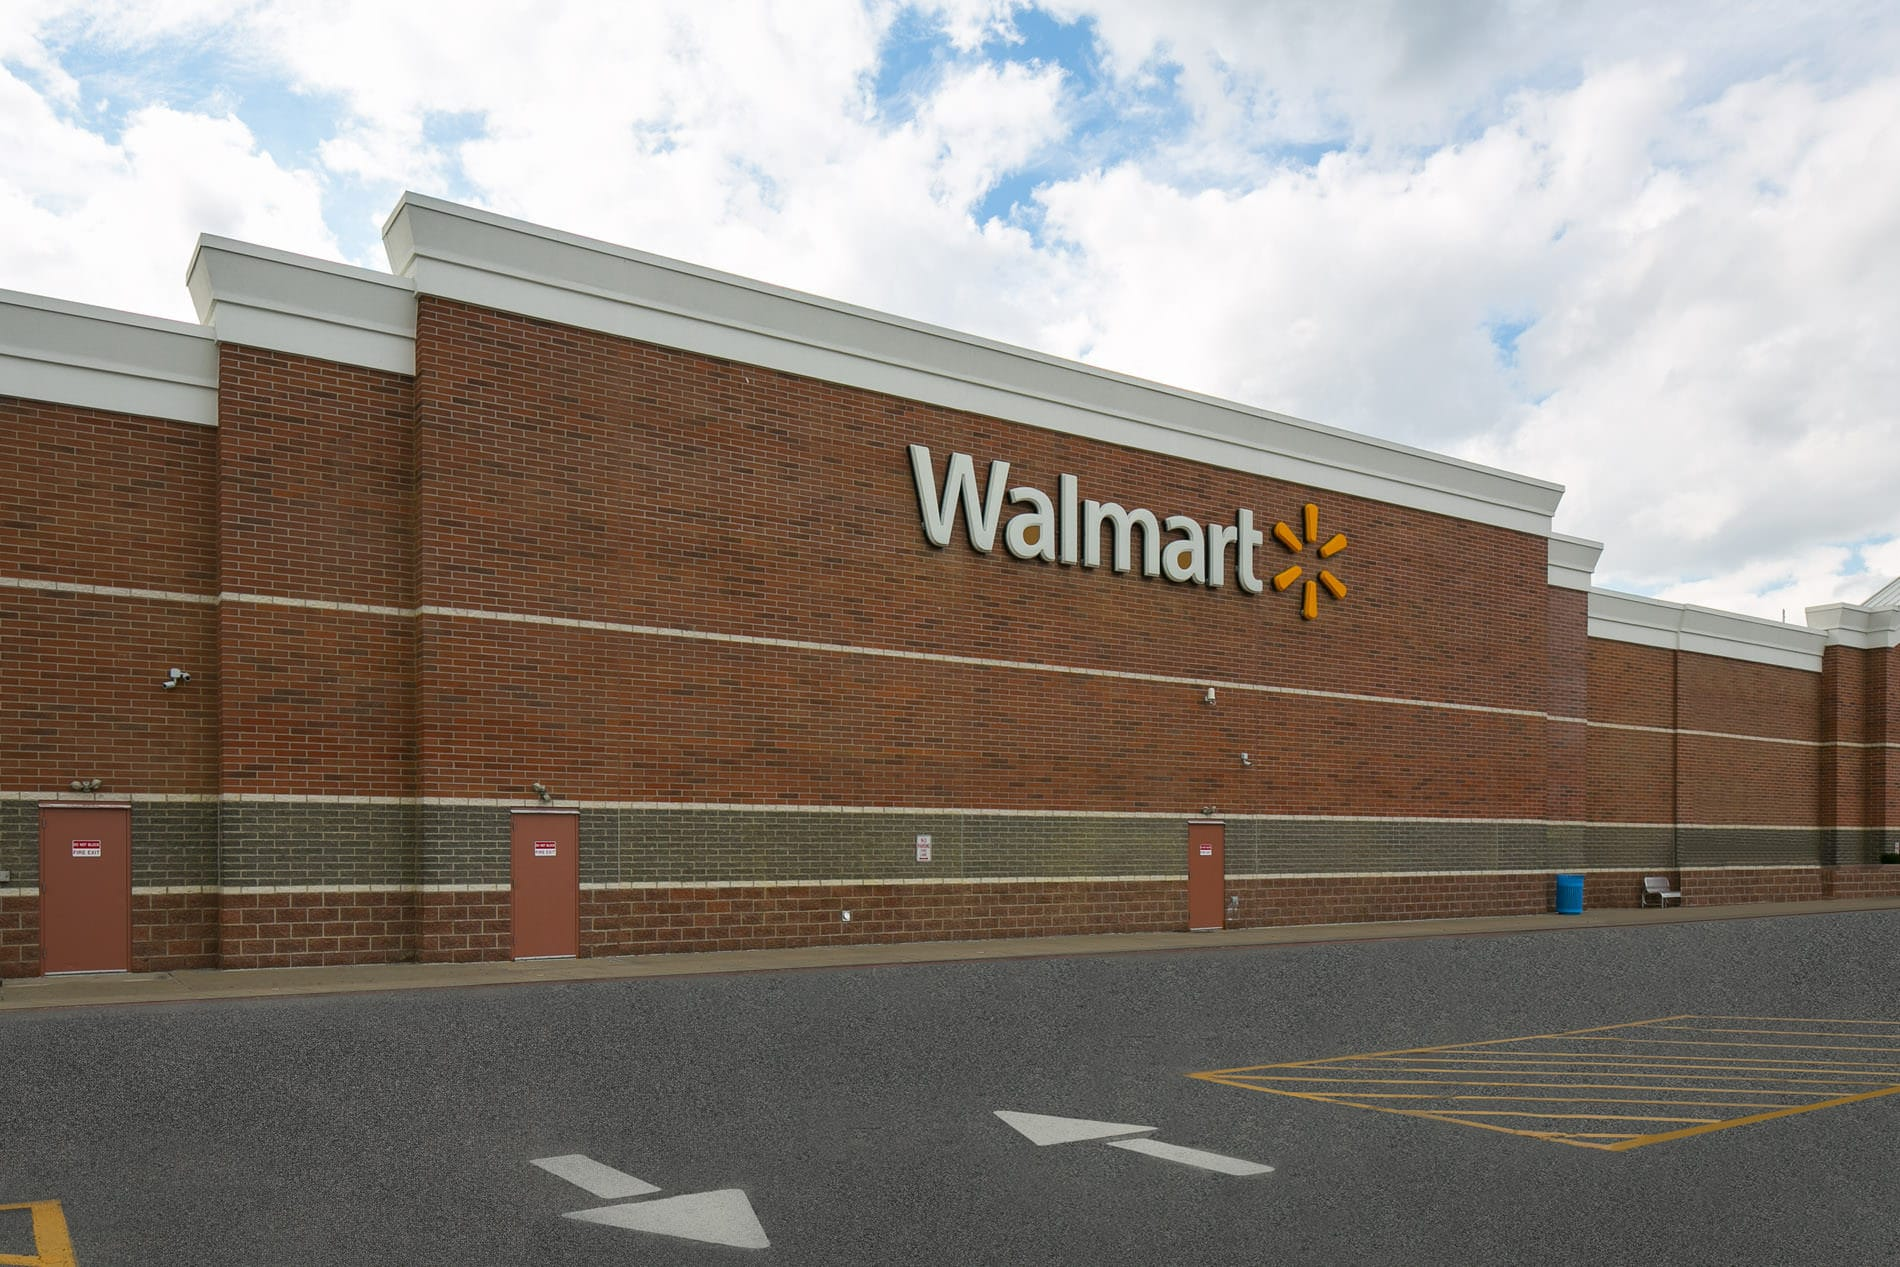 Wal-Mart-After-Exterior-Photograph